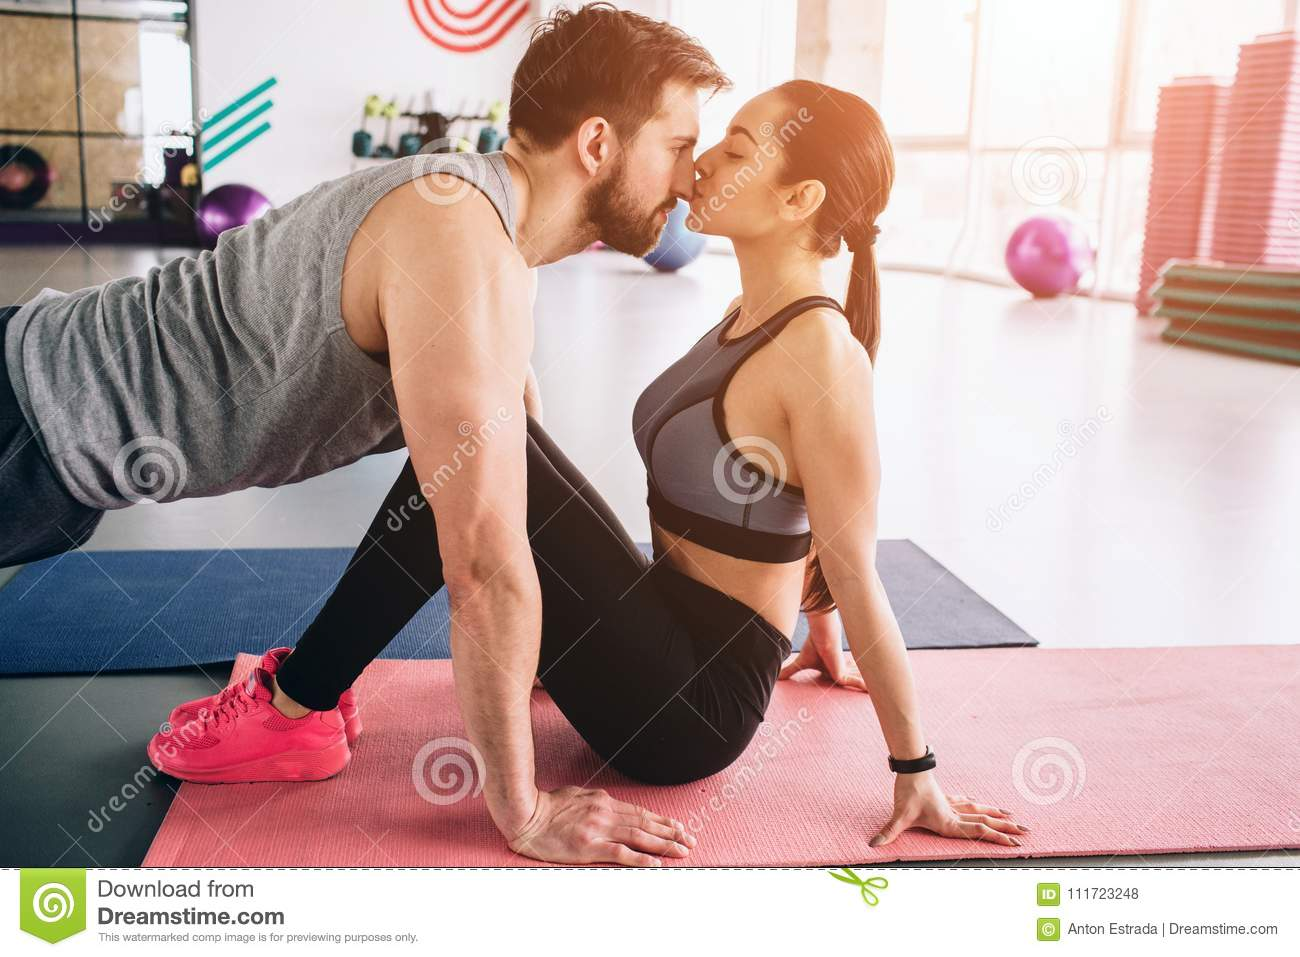 Cut view of a guy standing in a high plank position while his girlfriend is kissing him. It is so touchable and